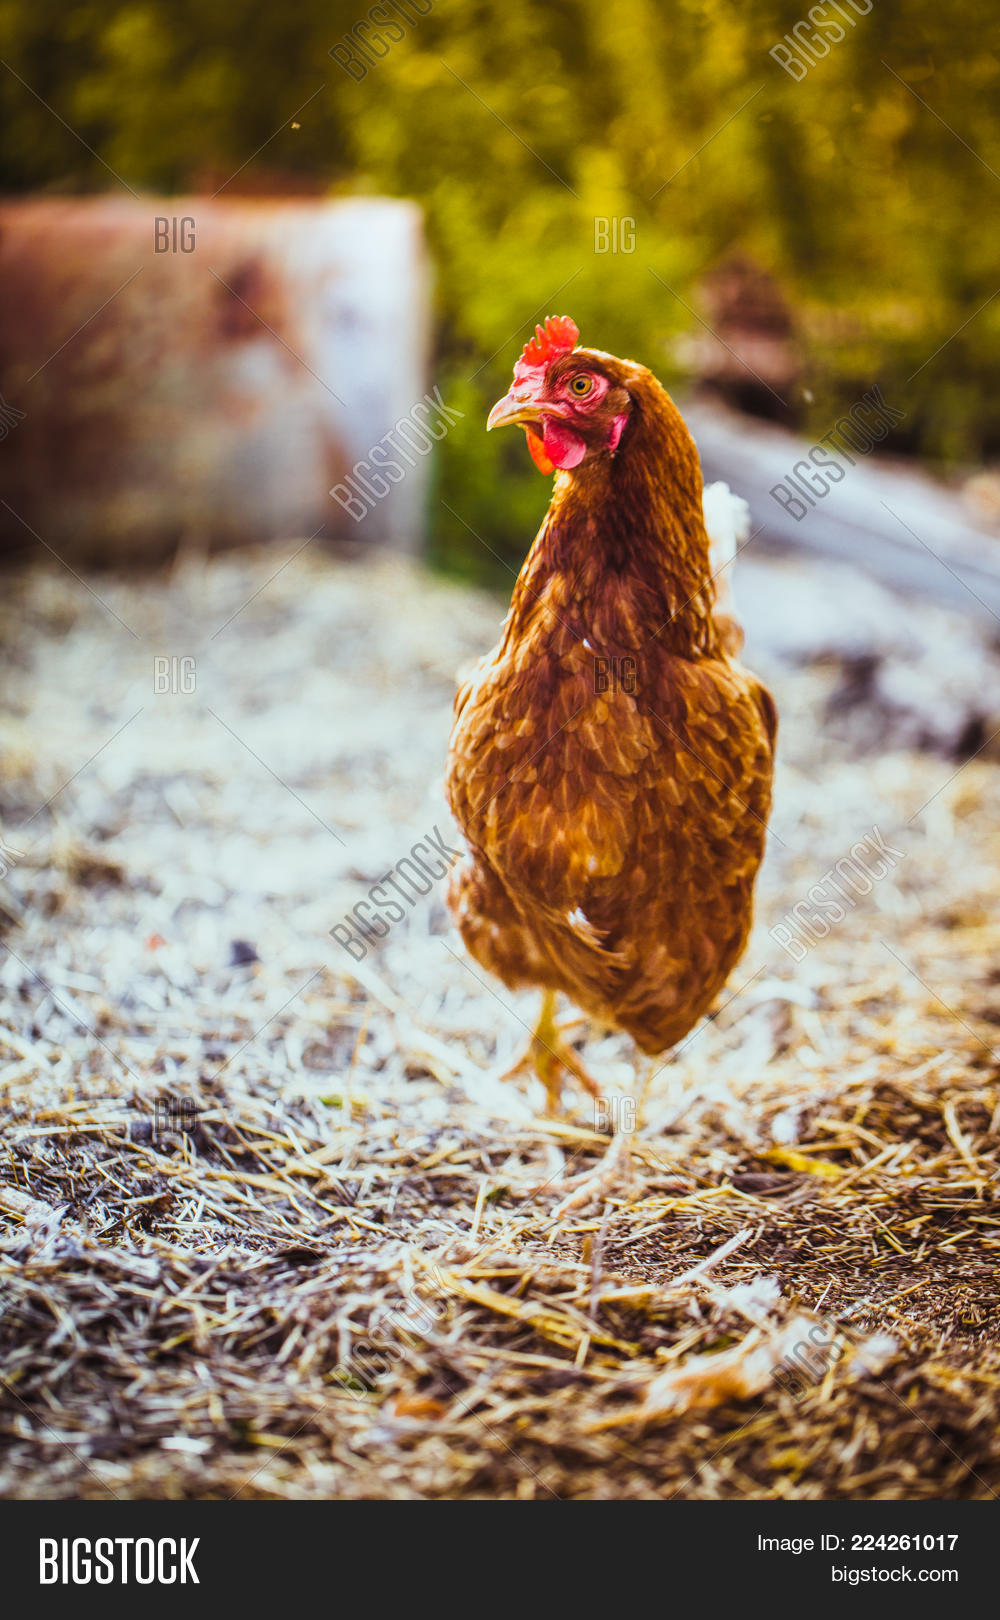 chickens running on image photo free trial bigstock